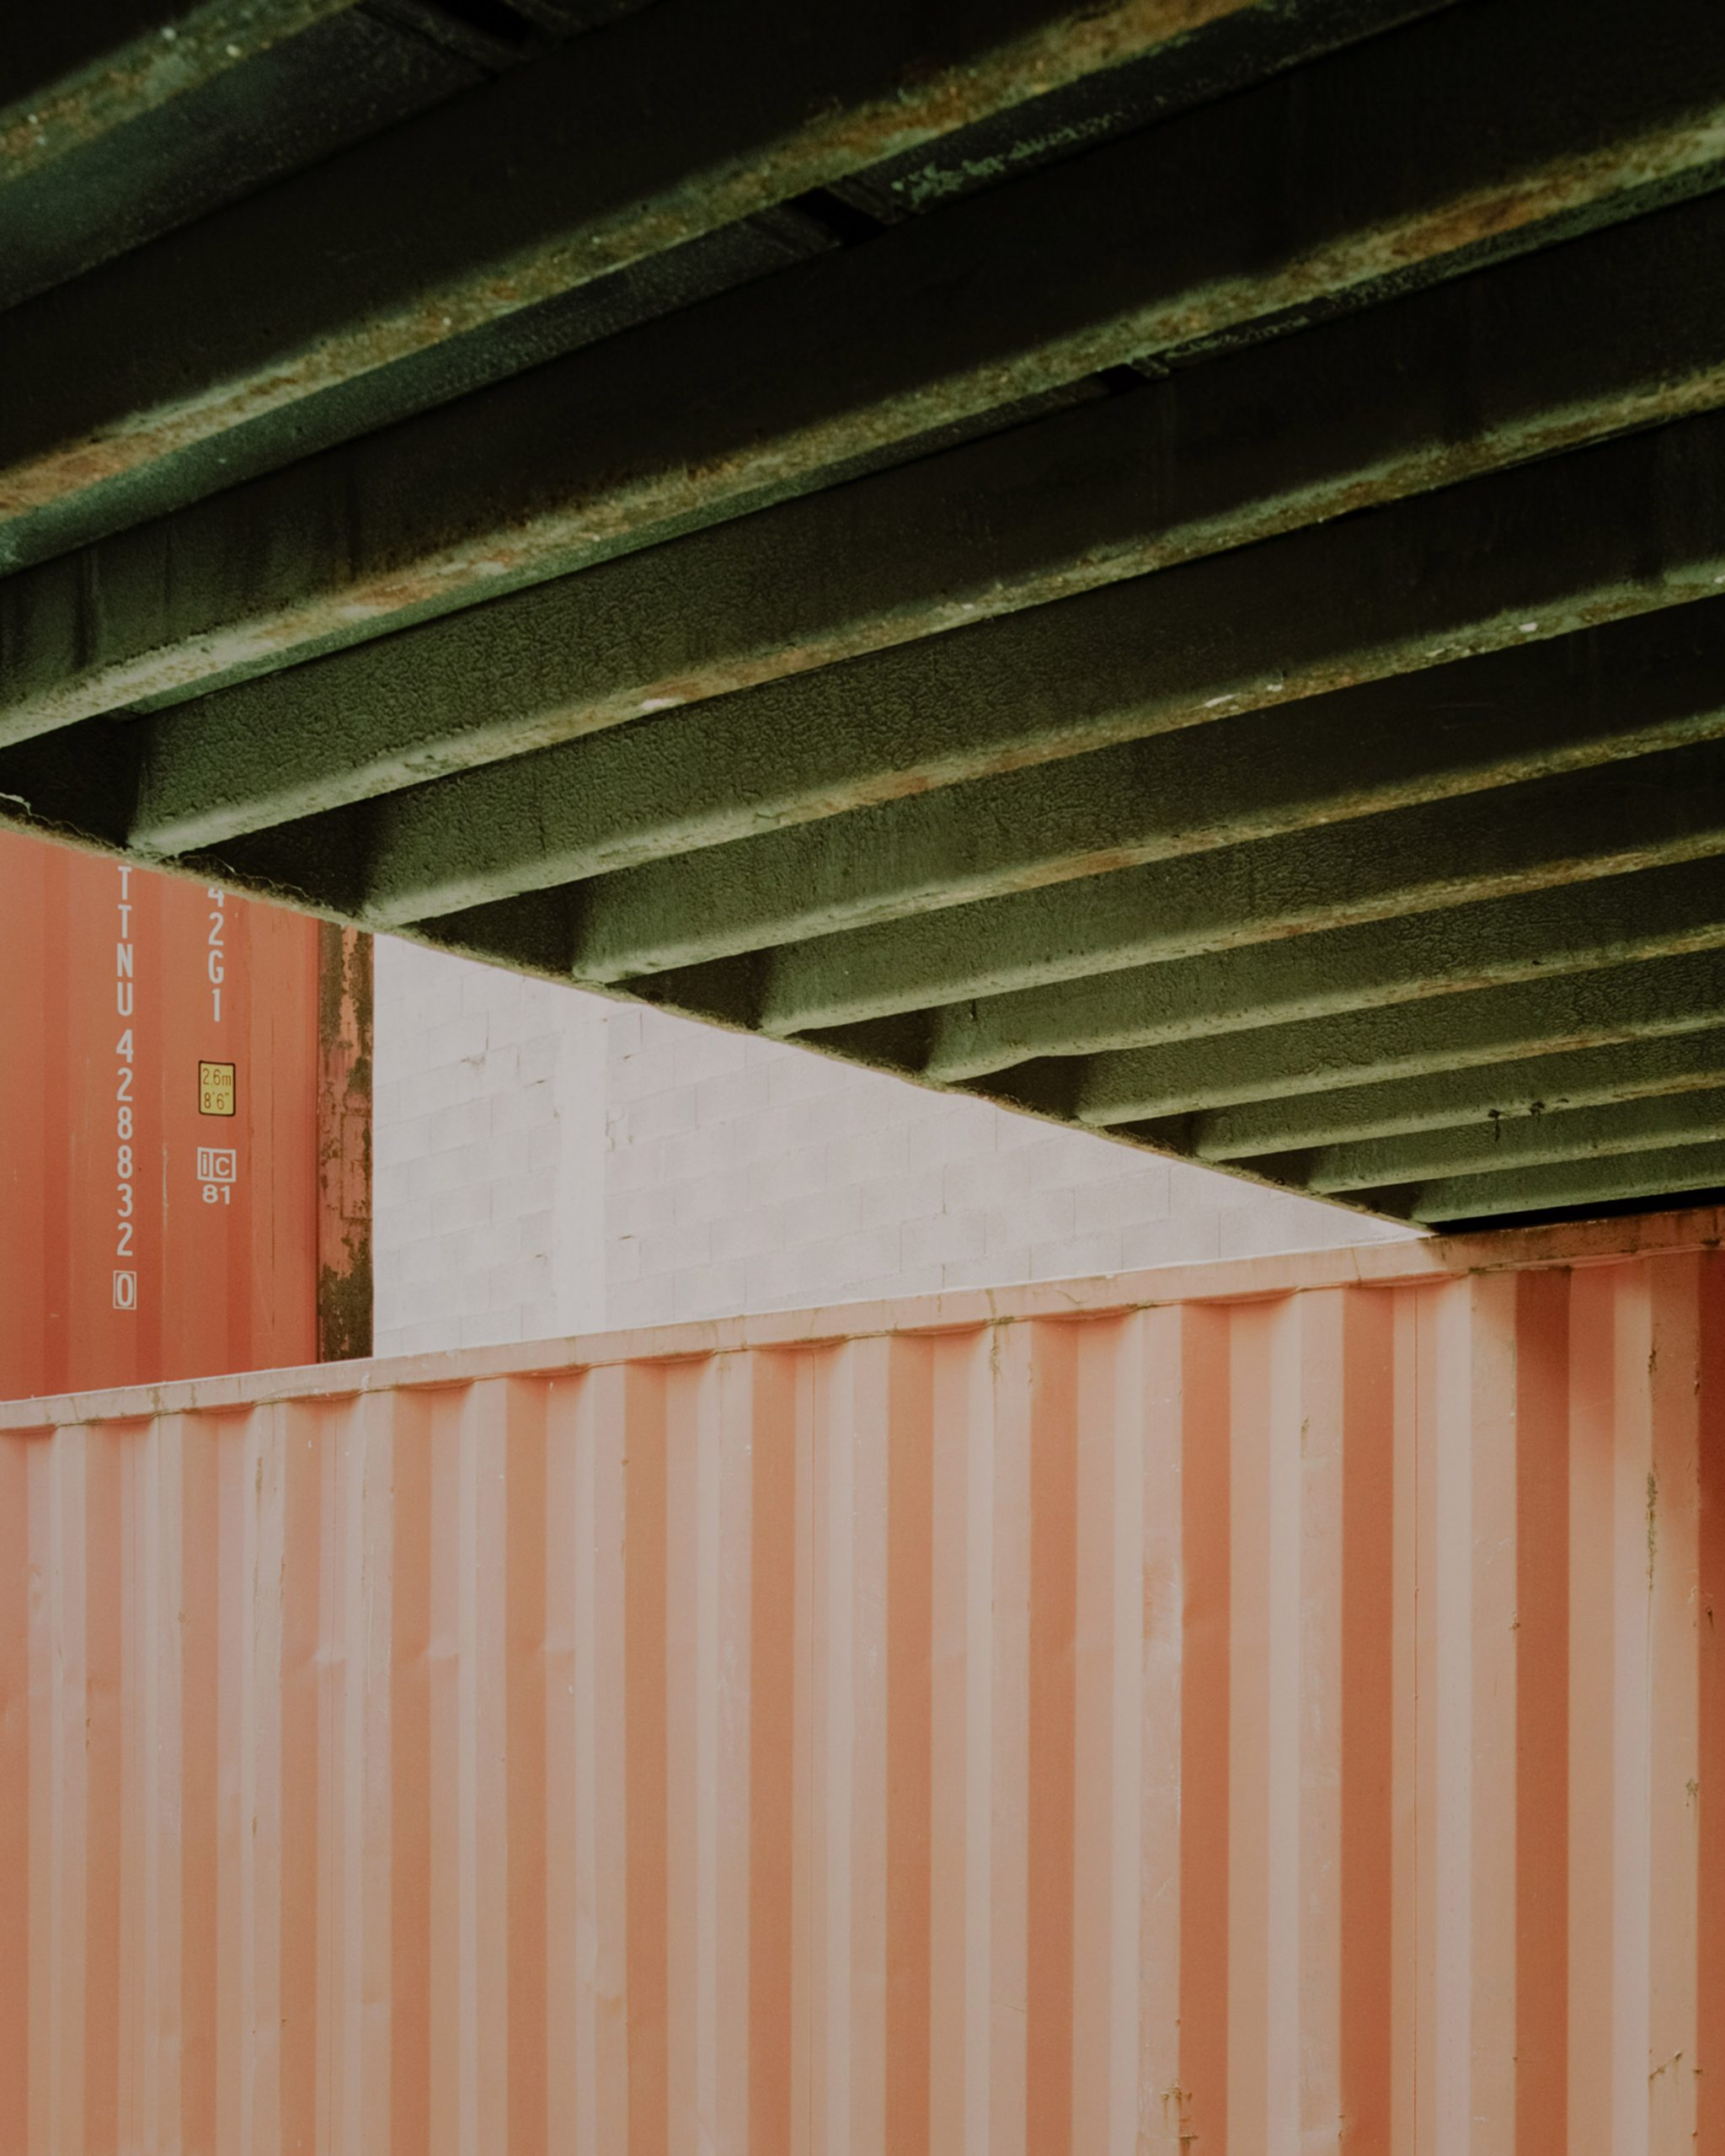 Space within a space shipping container installation